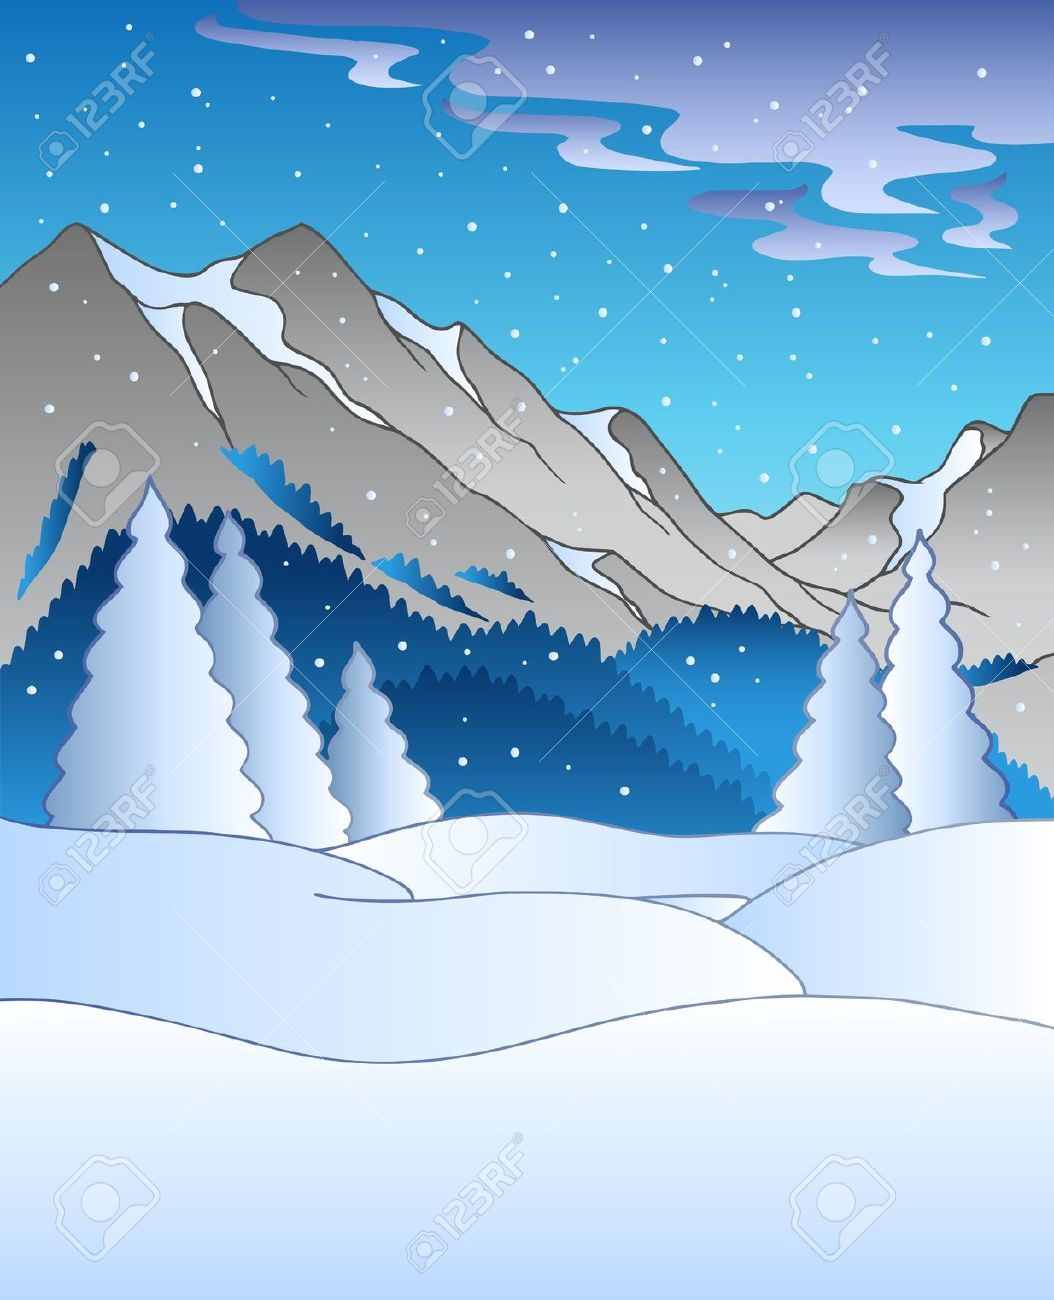 Snowy mountains clipart.